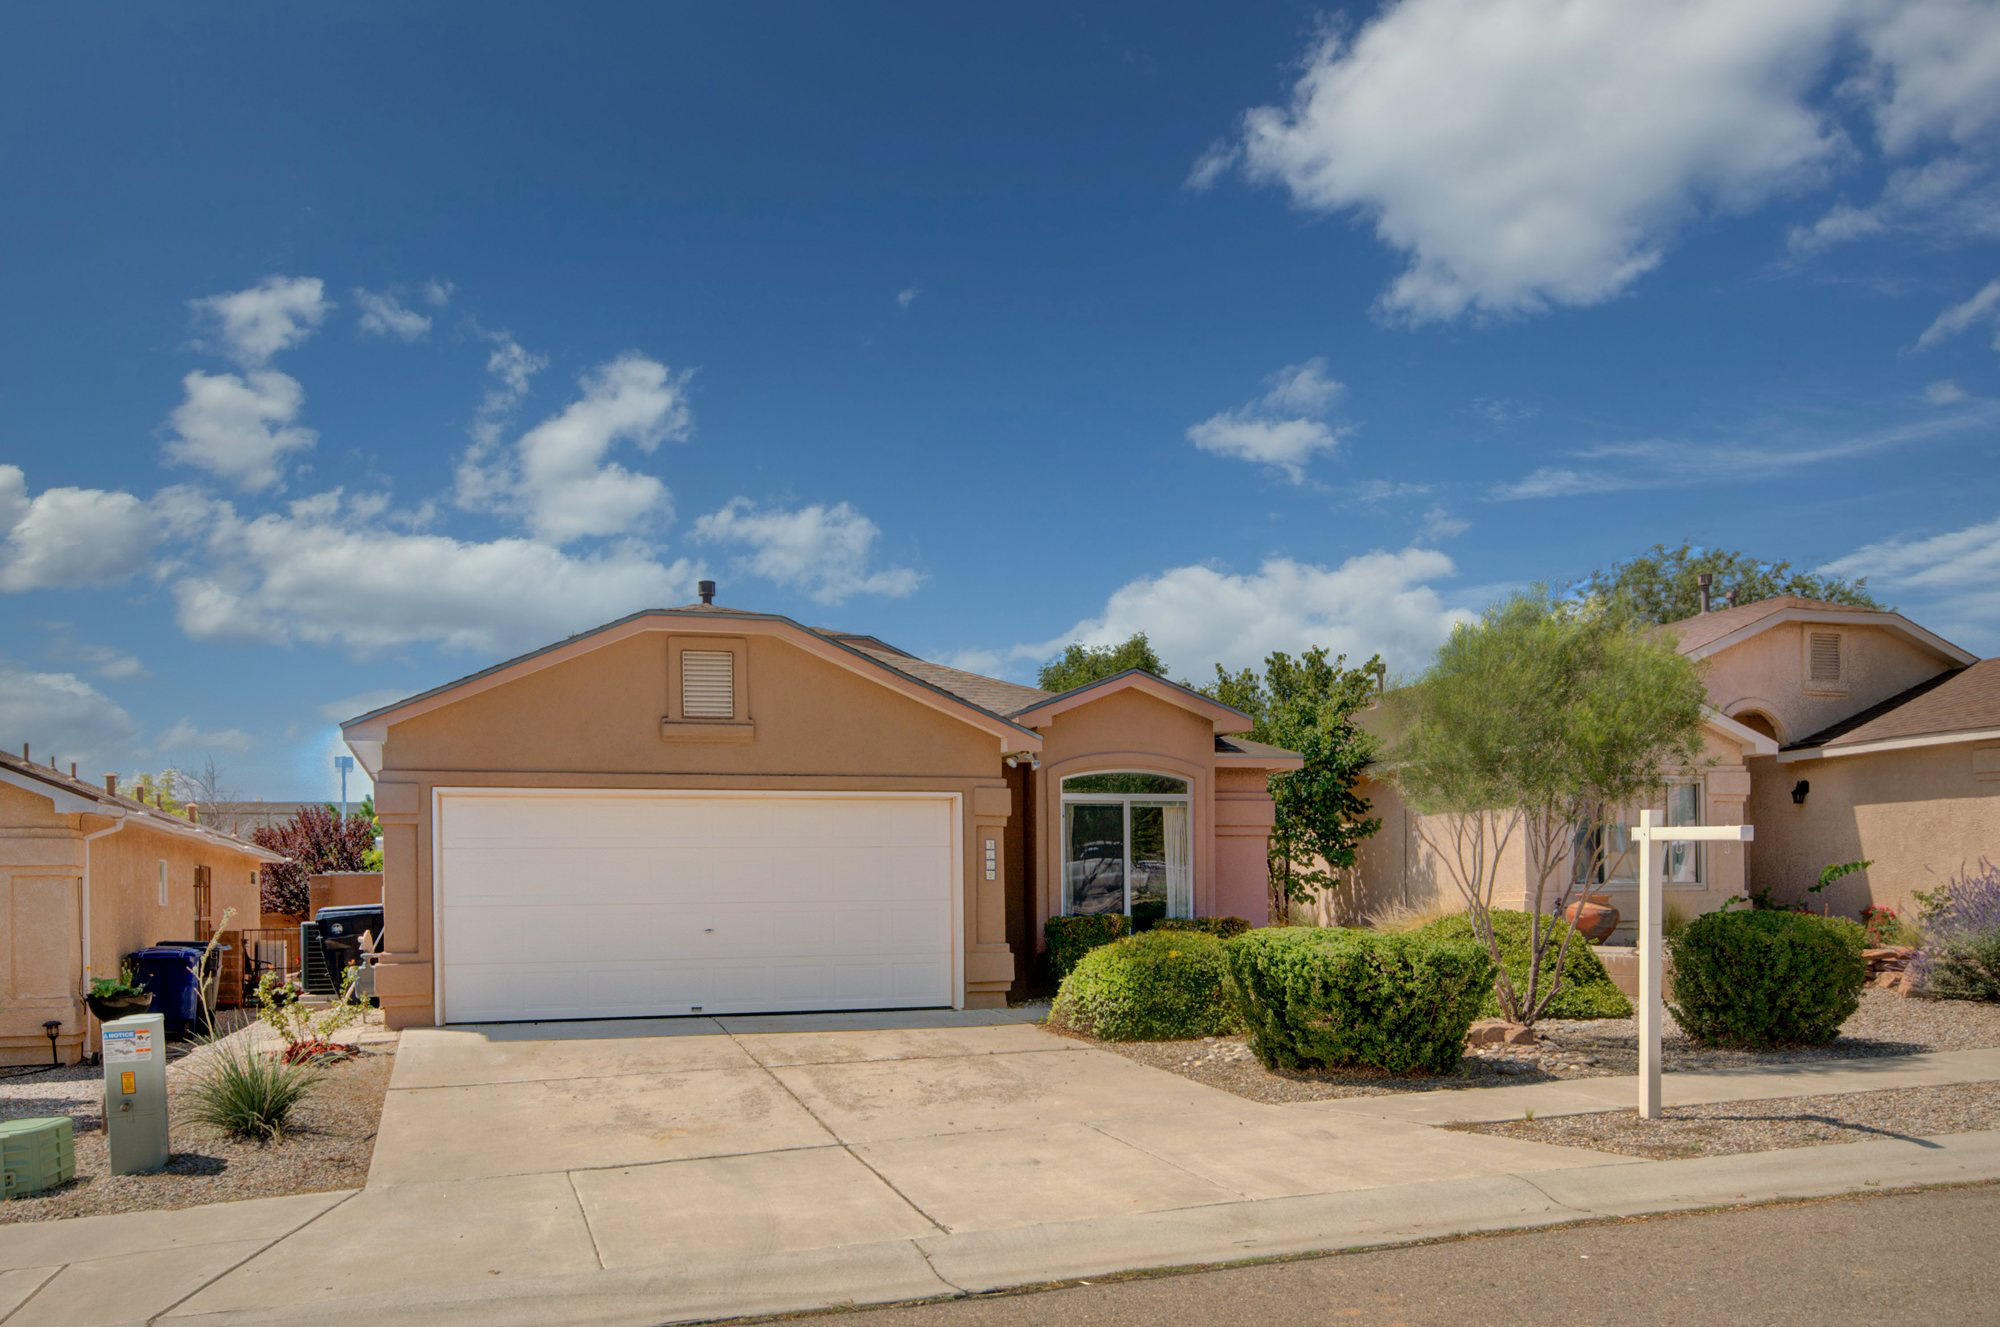 Location, Location, Location! Bright open floor plan. Bosque Open Space Visitor Center within walking distance. Refrigerated A/C 2007. Roof replaced 2017. Tankless Water Heater, Tile 2011. Interior paint 2019.